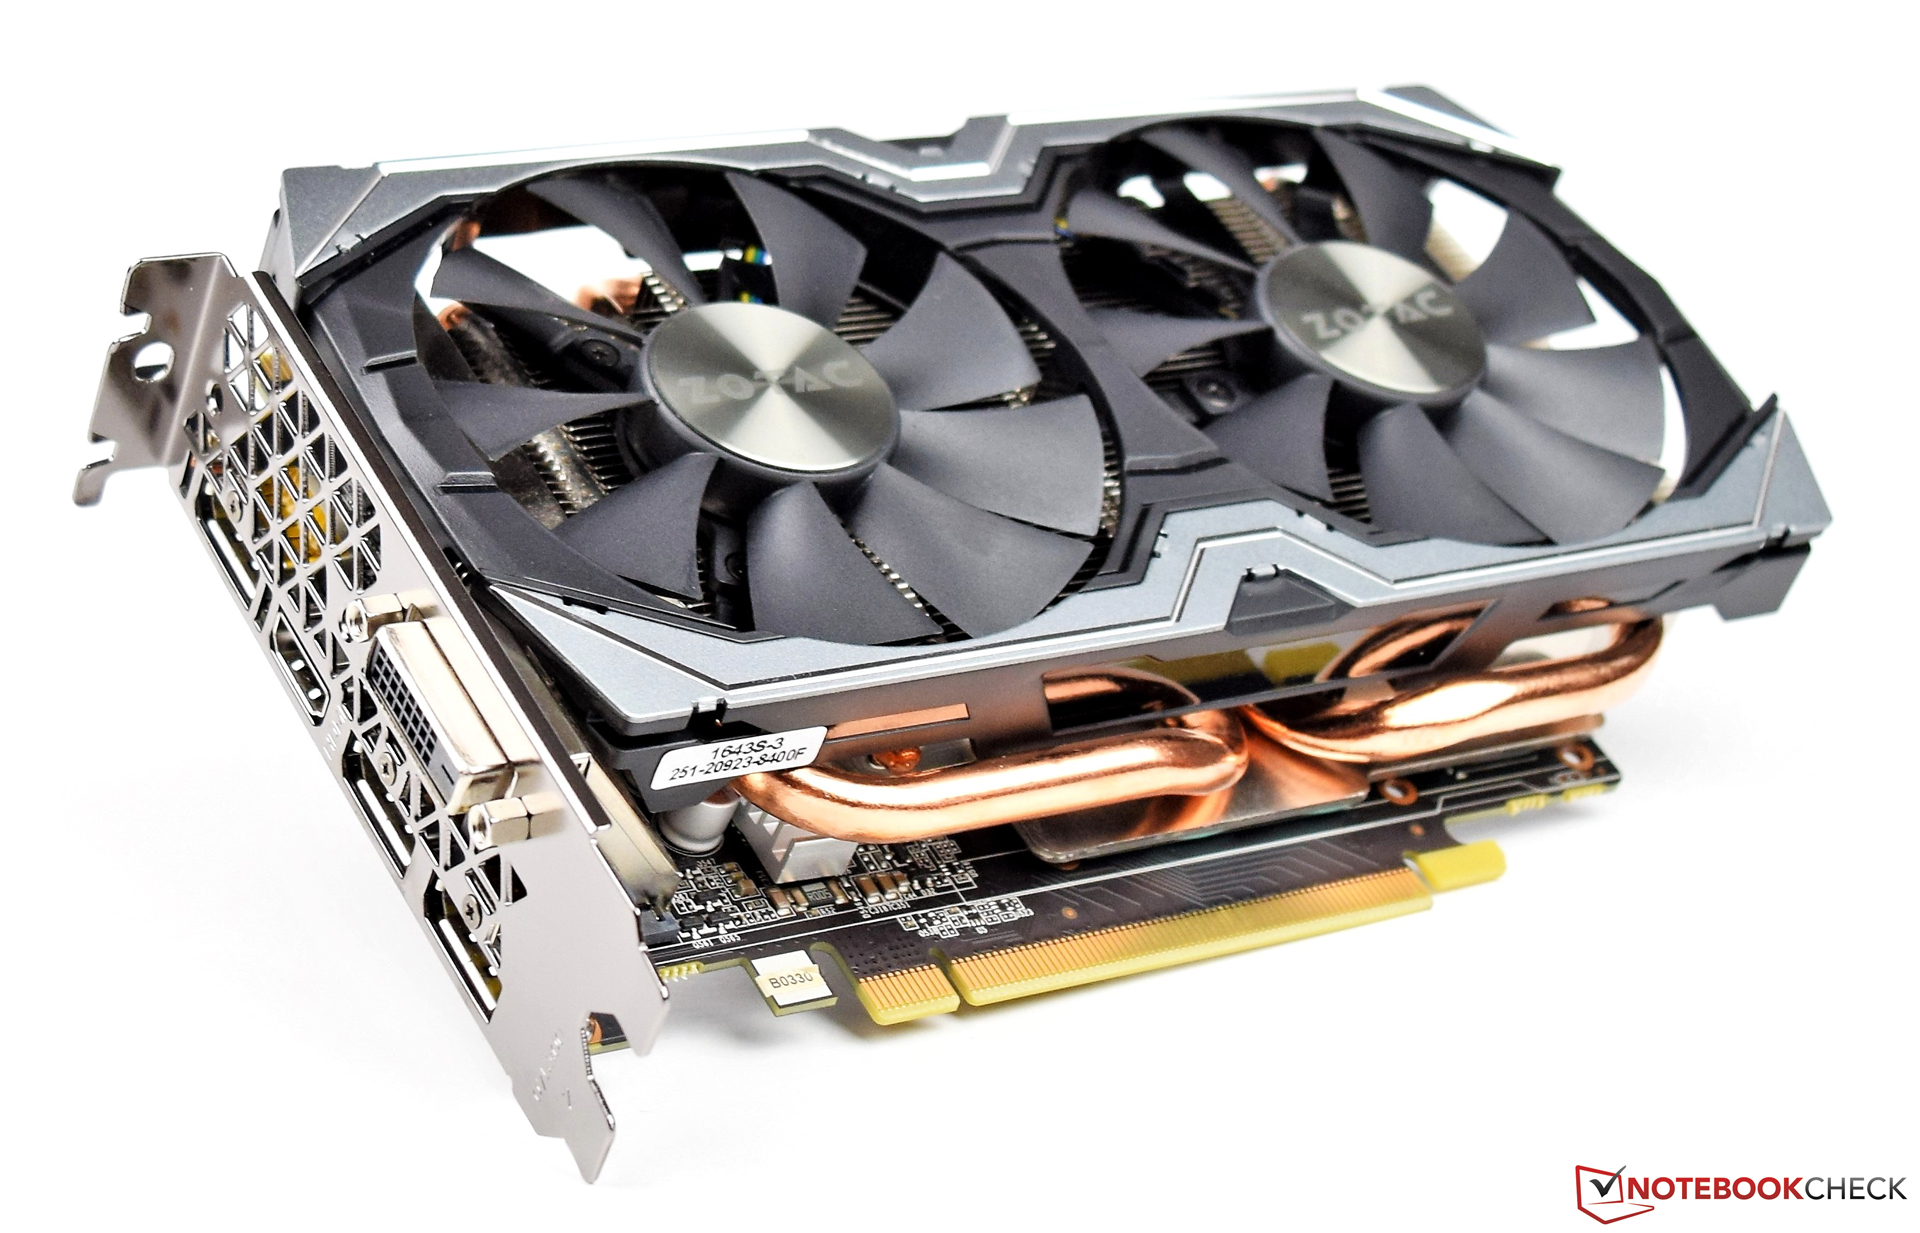 Zotac GeForce GTX 1070 Mini Graphics Card SLI Configuration Review